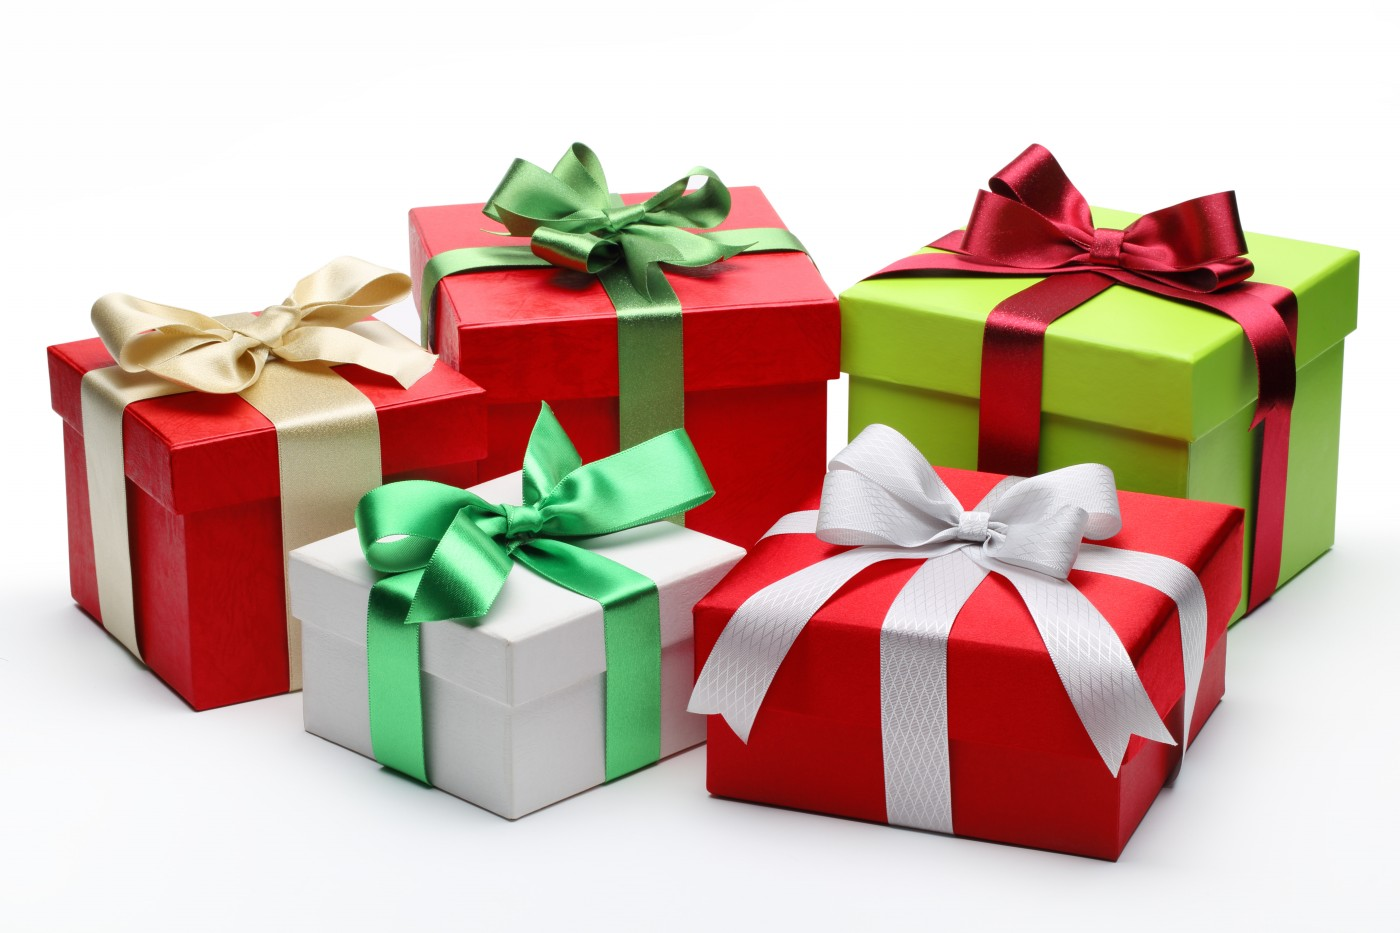 Five Colorful Gift Boxes 840.82 Kb